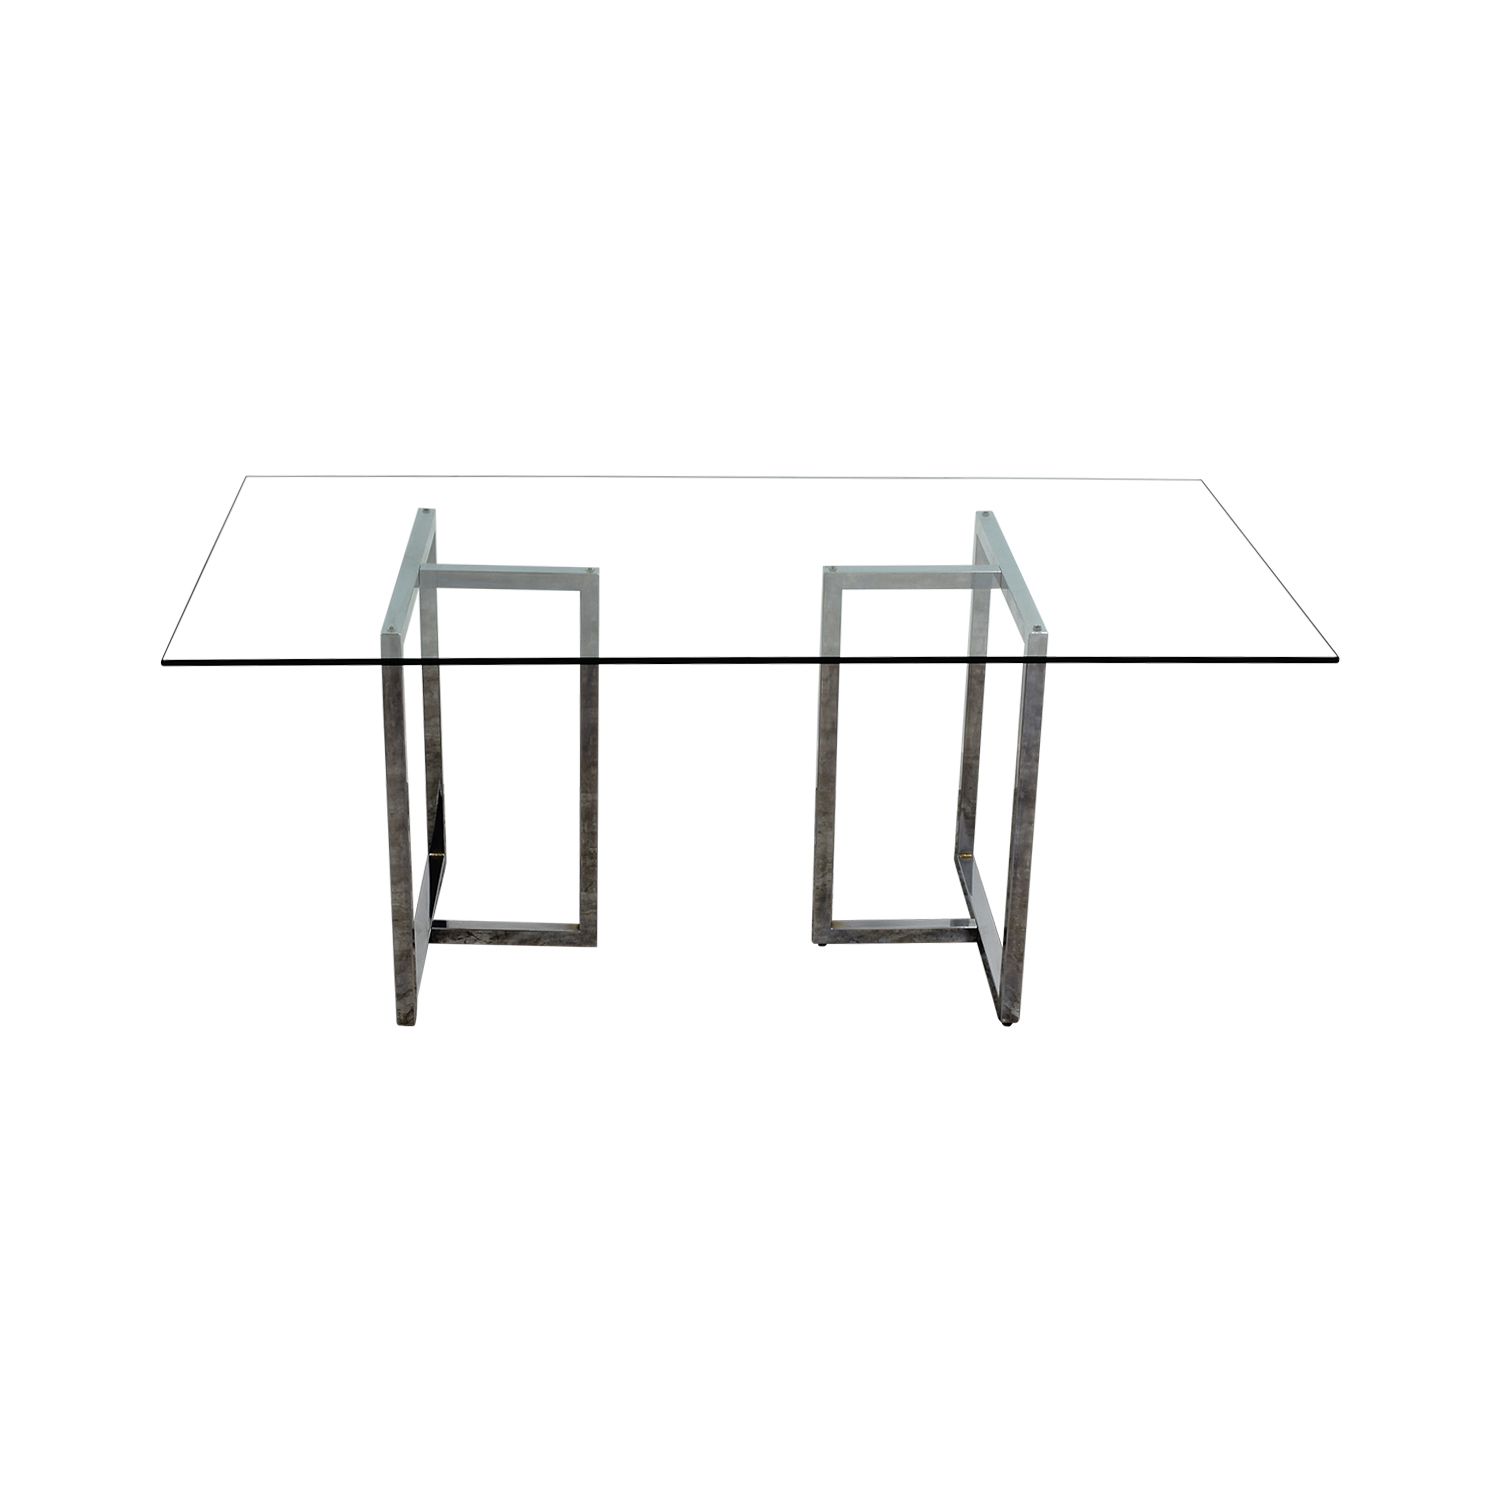 CB2 CB2 Silverado Rectangular Glass and Chrome Dining Table on sale